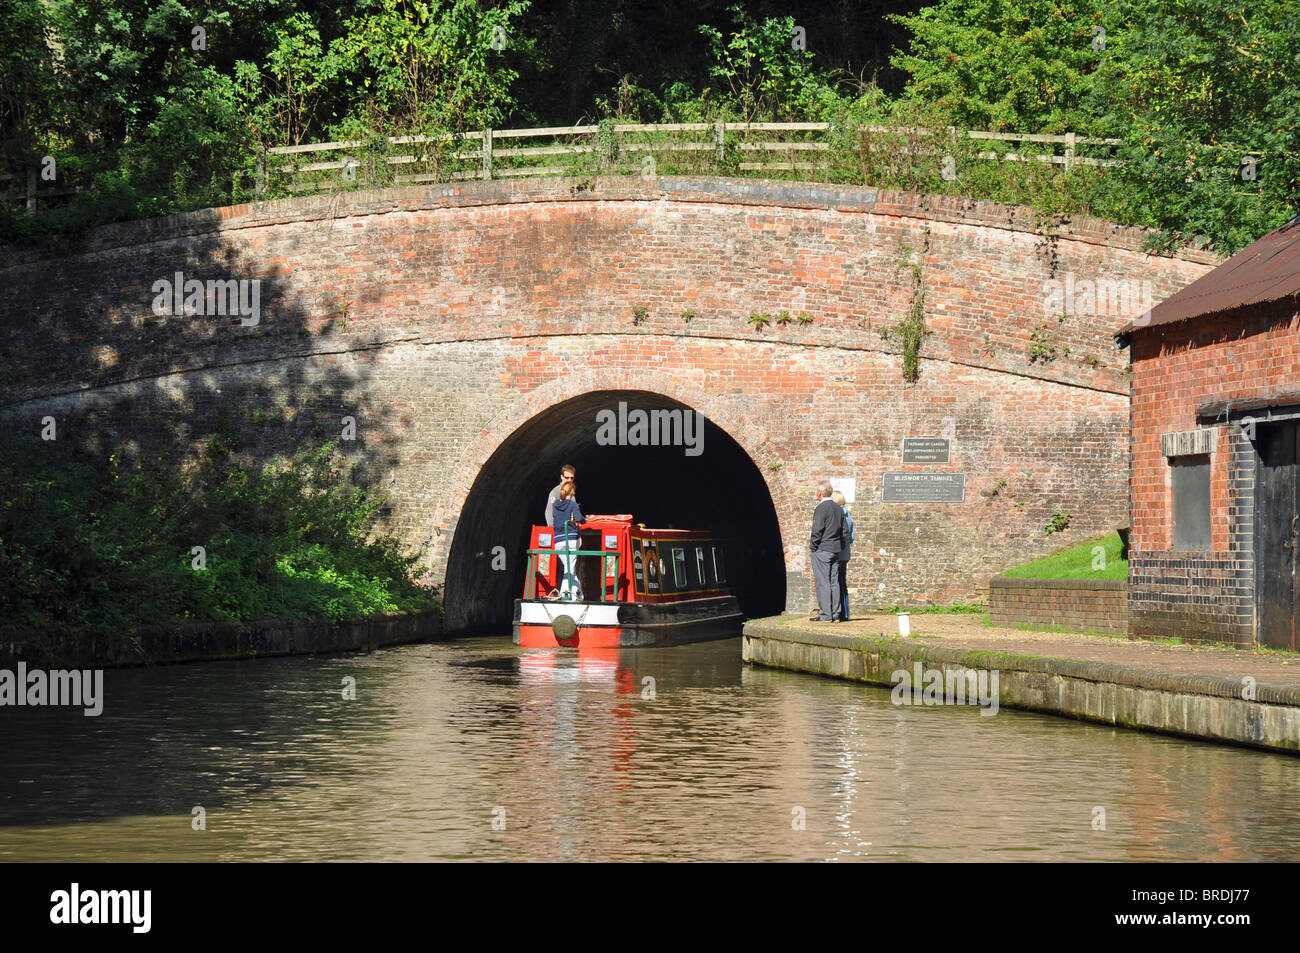 Barge enters the Blisworth Tunnel on the Grand Union Canal near Stoke Bruerne - Stock Image